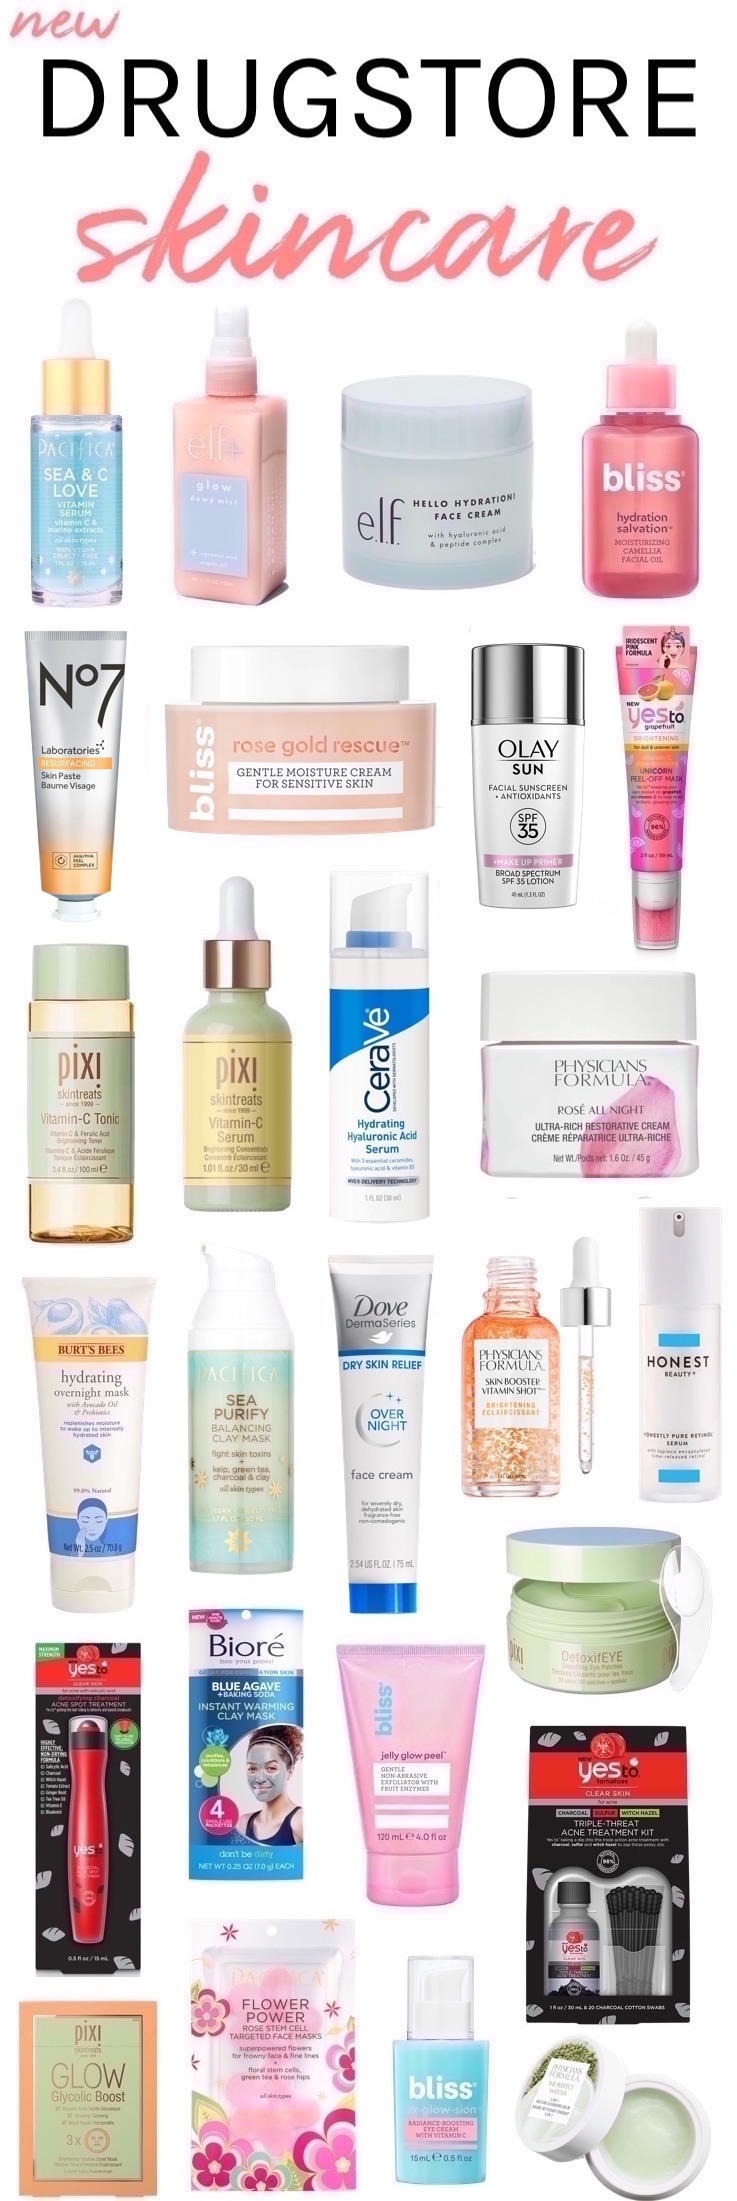 27 New Drugstore Skincare Picks You Won't Want to Miss! #drugstoreskincare #newdrugstorebeauty